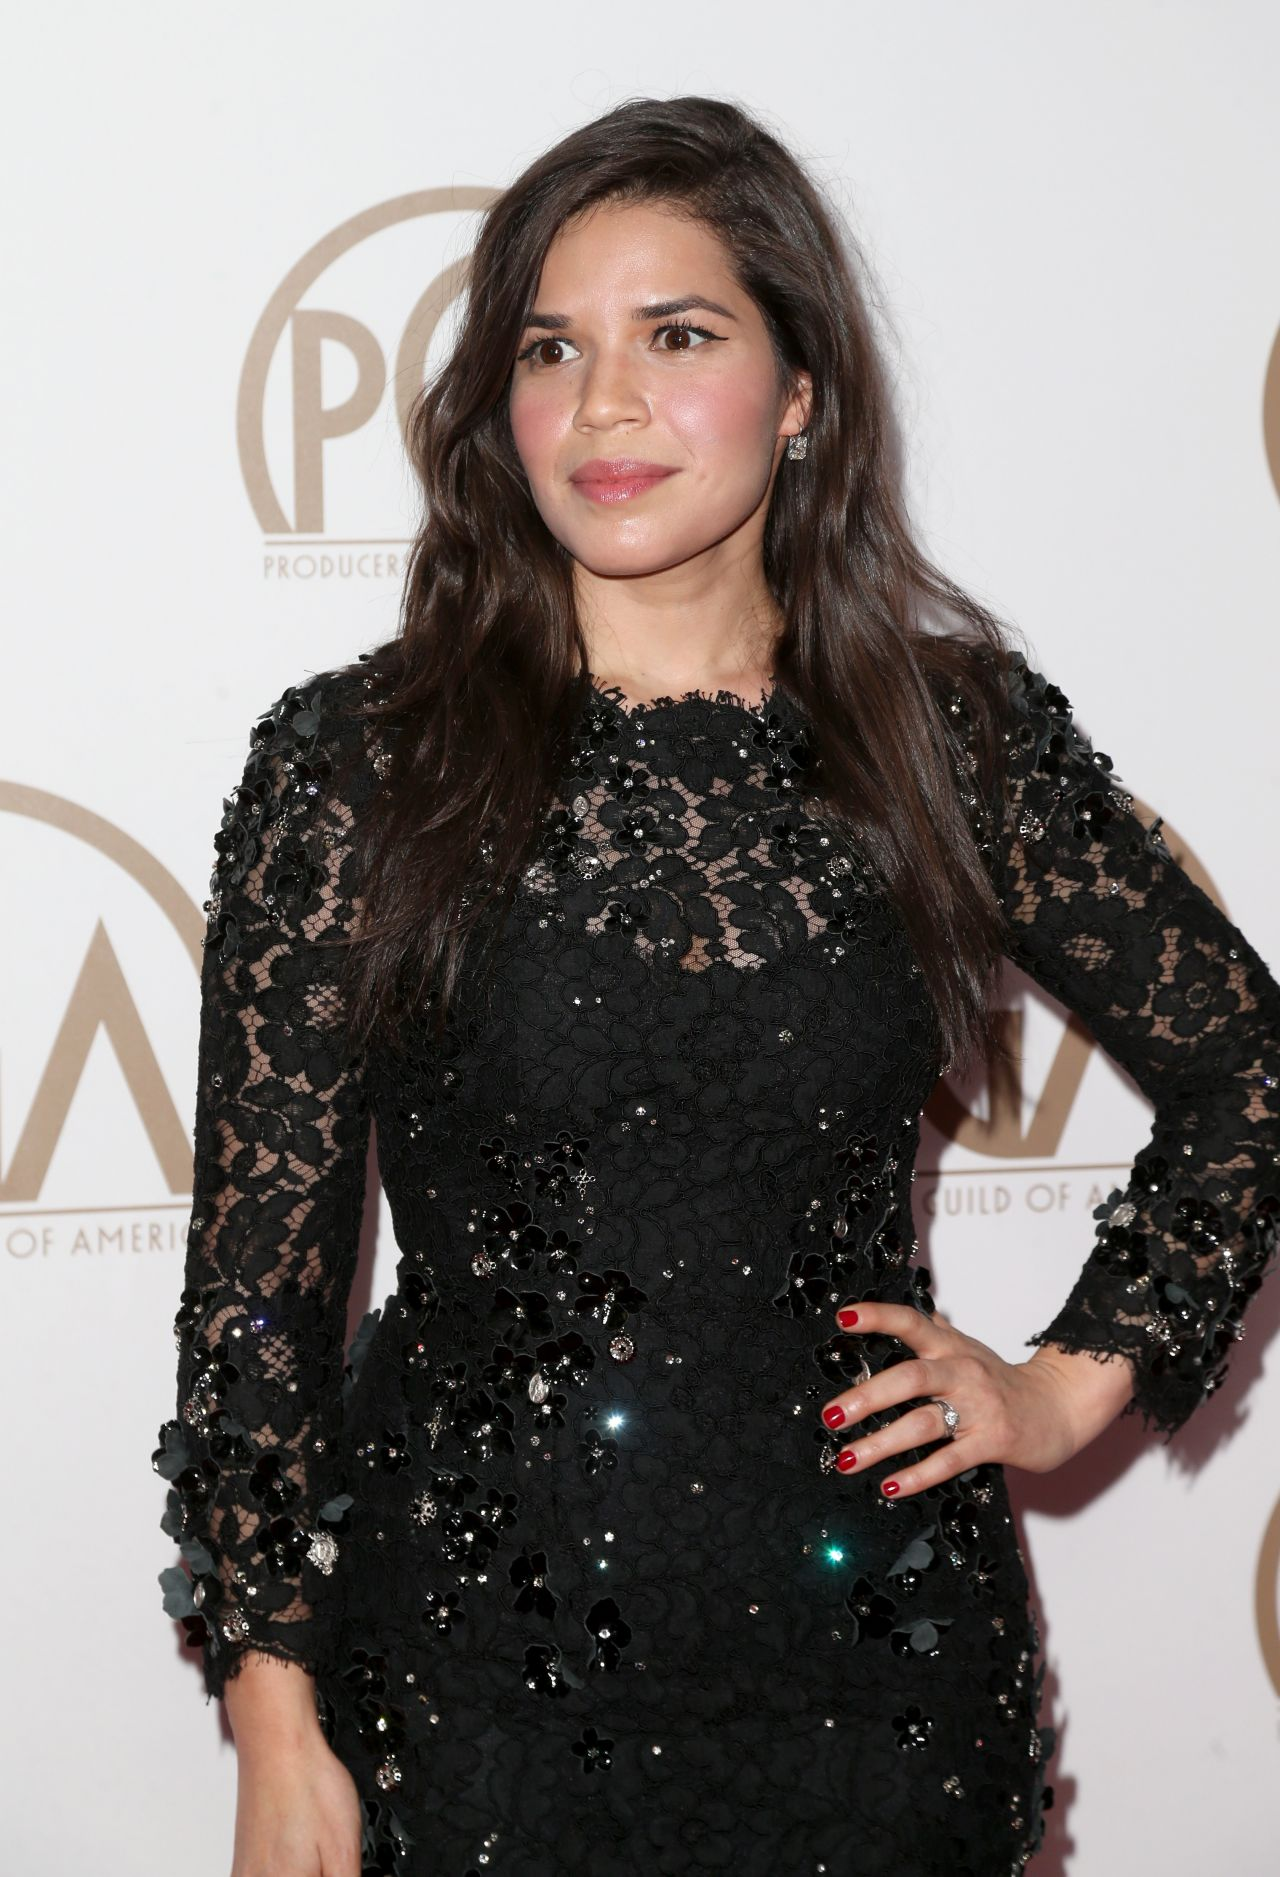 america-ferrera-2015-producers-guild-awards-in-los-angeles_1